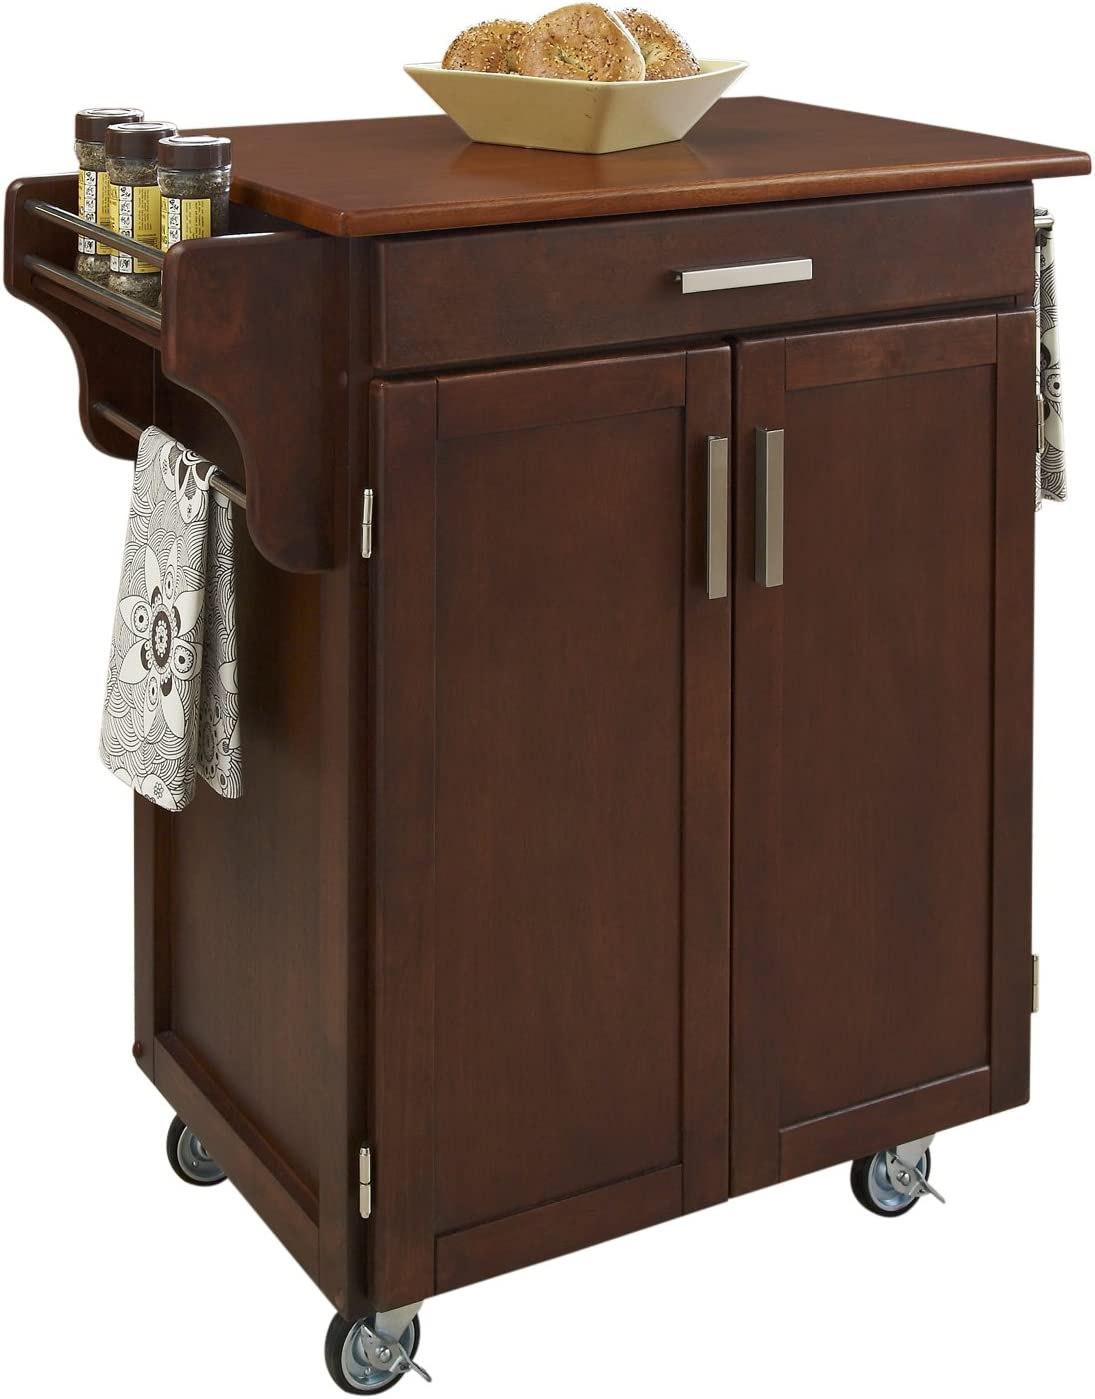 Create-a-Cart Cherry 2 Door Cabinet Kitchen Cart with Oak Top by Home Styles